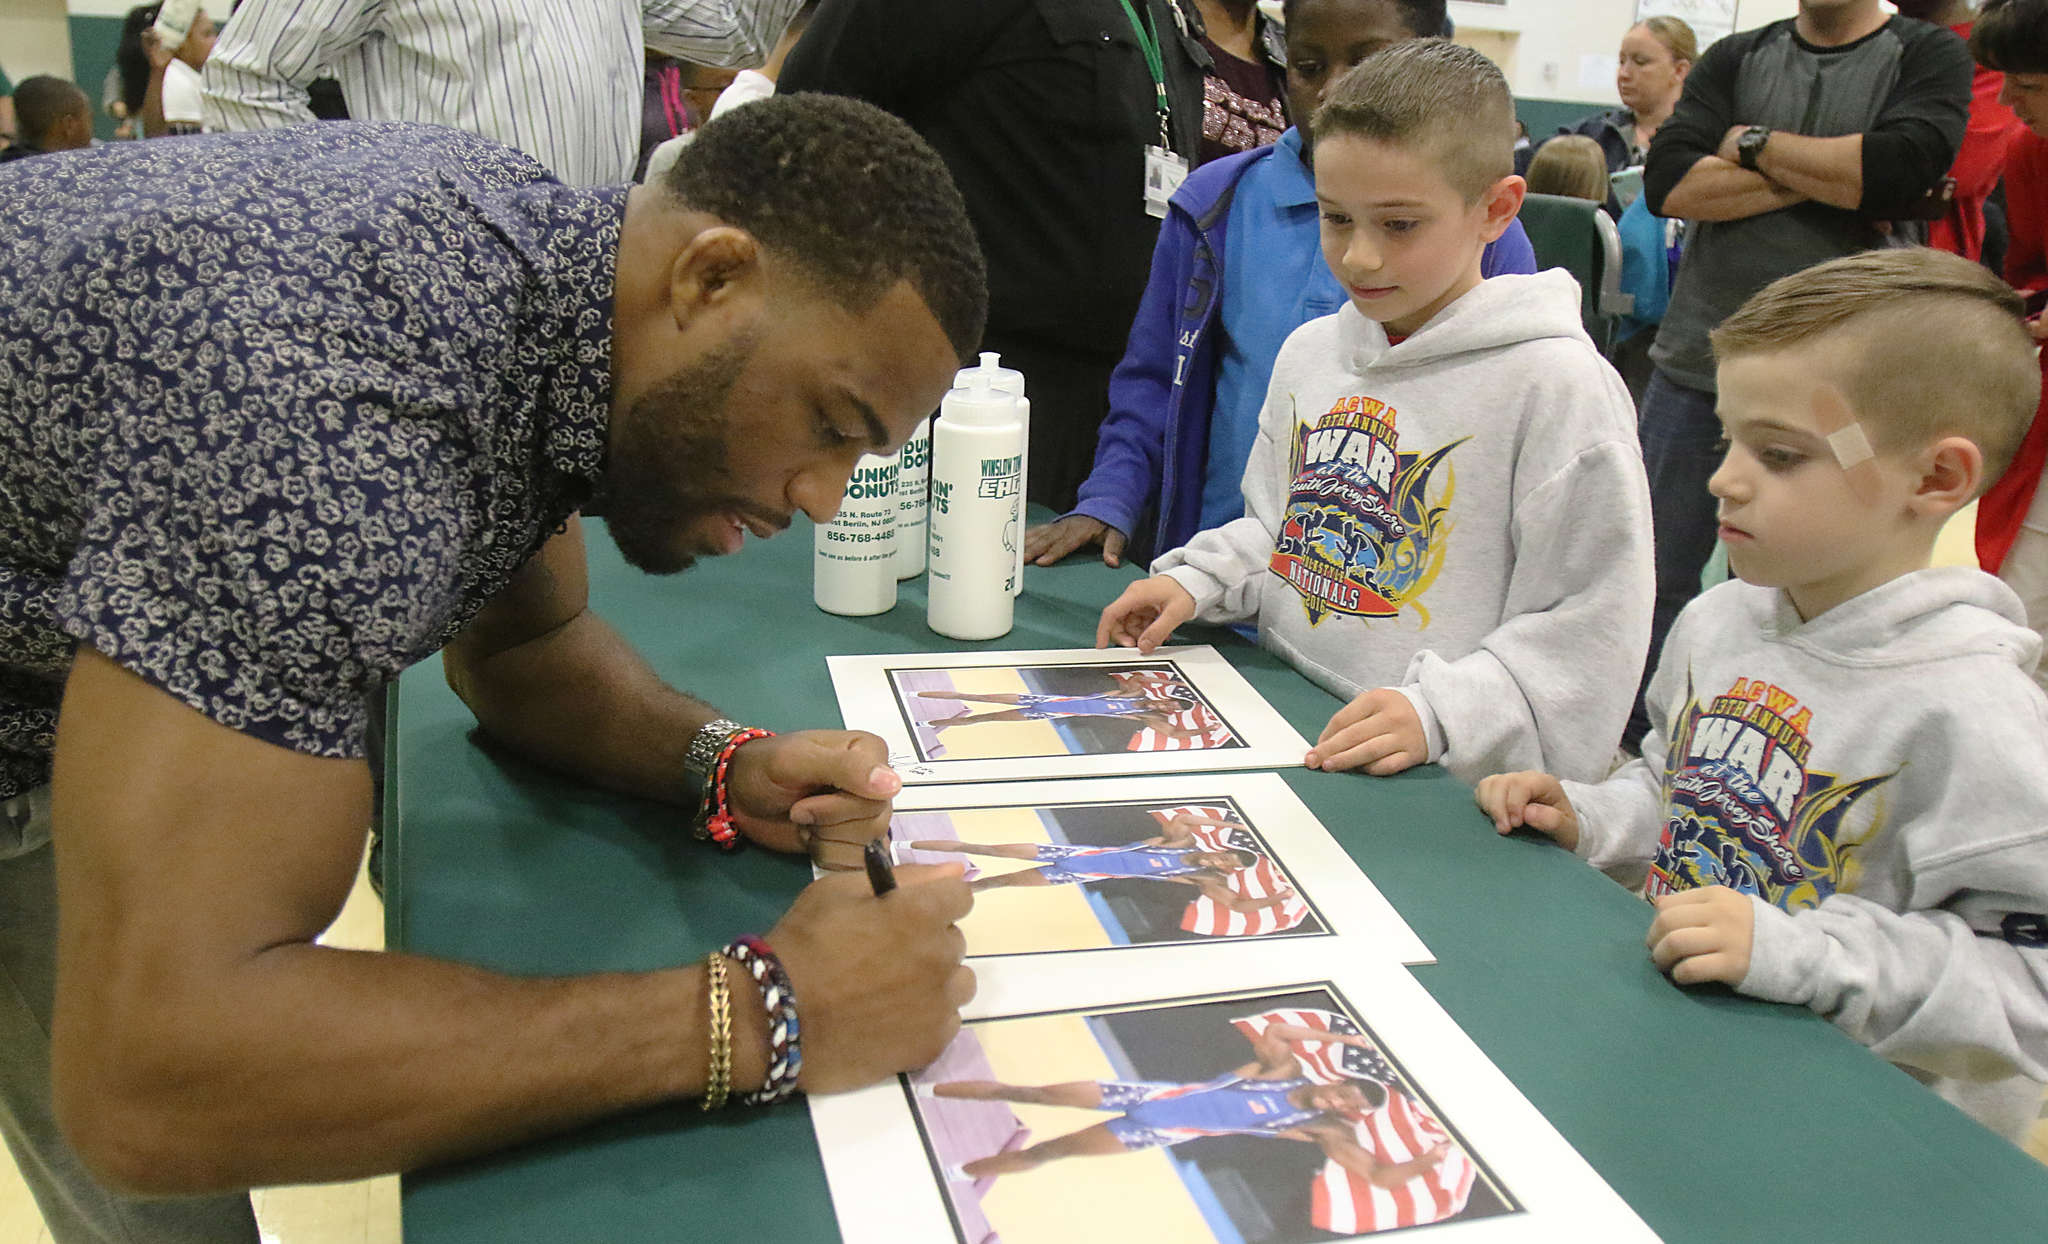 Jordan Burroughs was back at Winslow Township High to meet with fans. His record was 115-20 for the Eagles, but he is 124-2 against the world´s best, including an Olympic gold medal, since graduating from Nebraska.